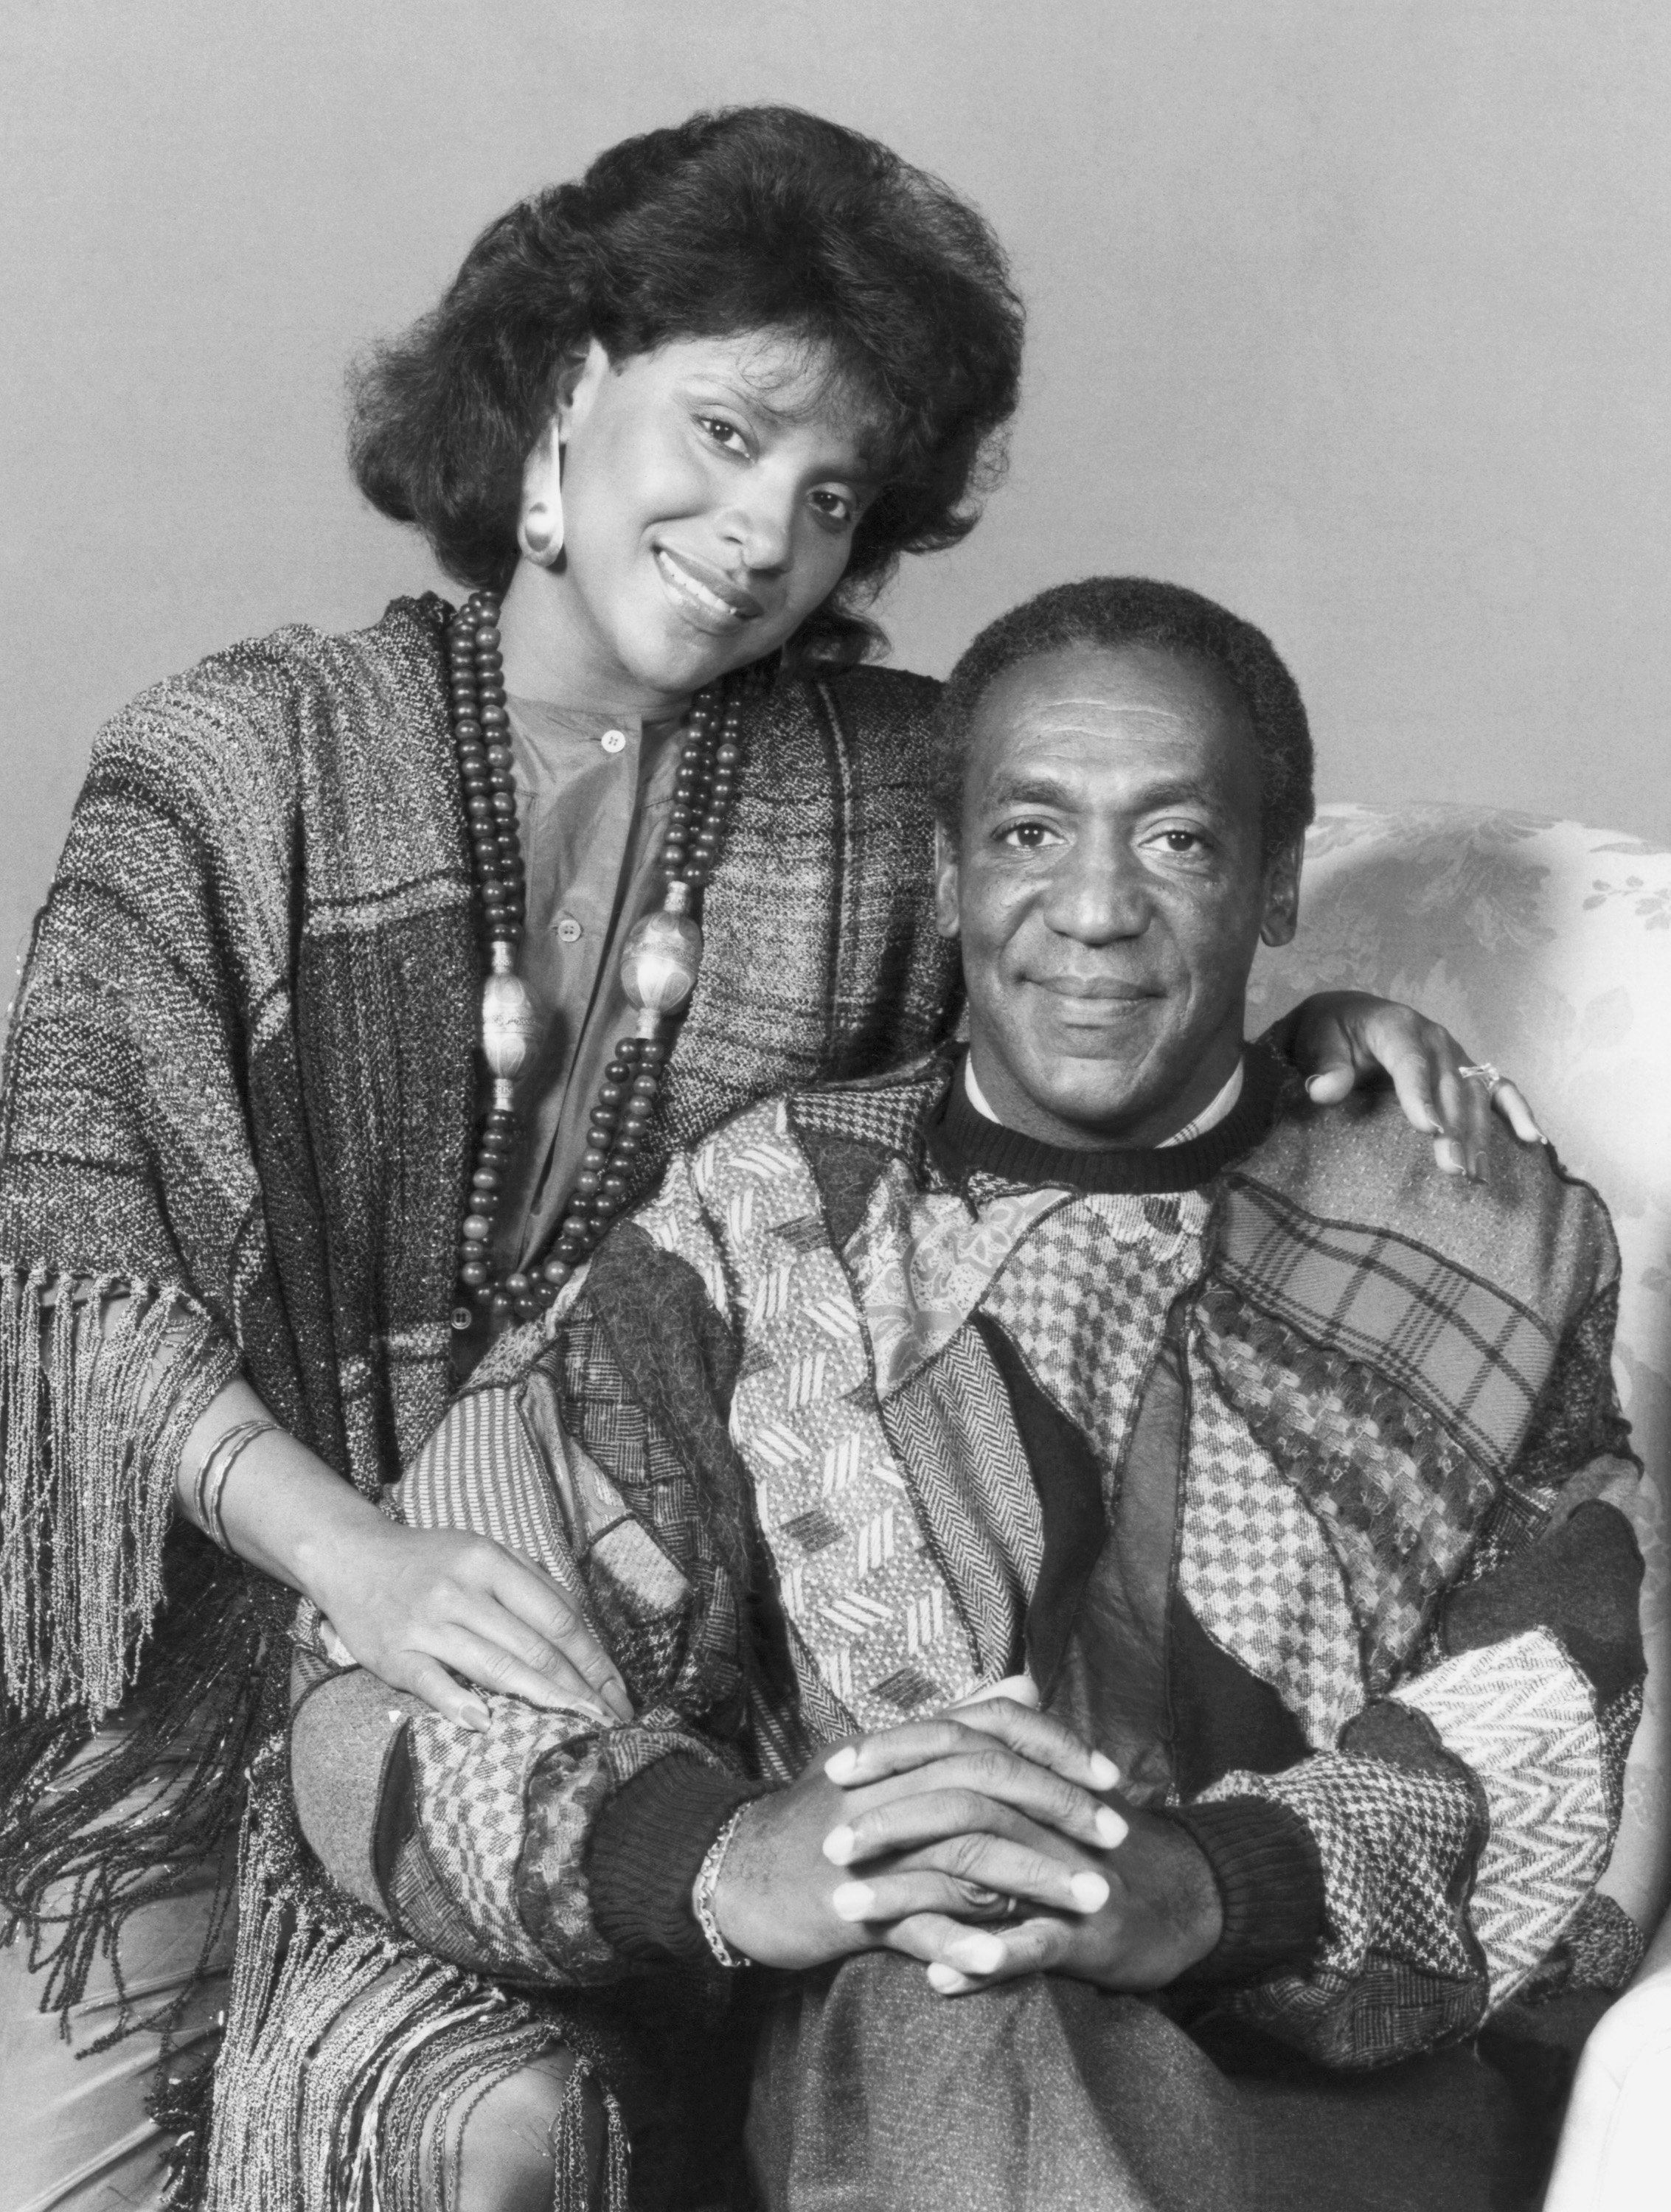 THE COSBY SHOW -- Season 3 -- Pictured: (l-r) Phylicia Rashad as Clair Hanks Huxtable, Bill Cosby as Dr. Heathcliff 'Cliff' Huxtable | Photo: GettyImages